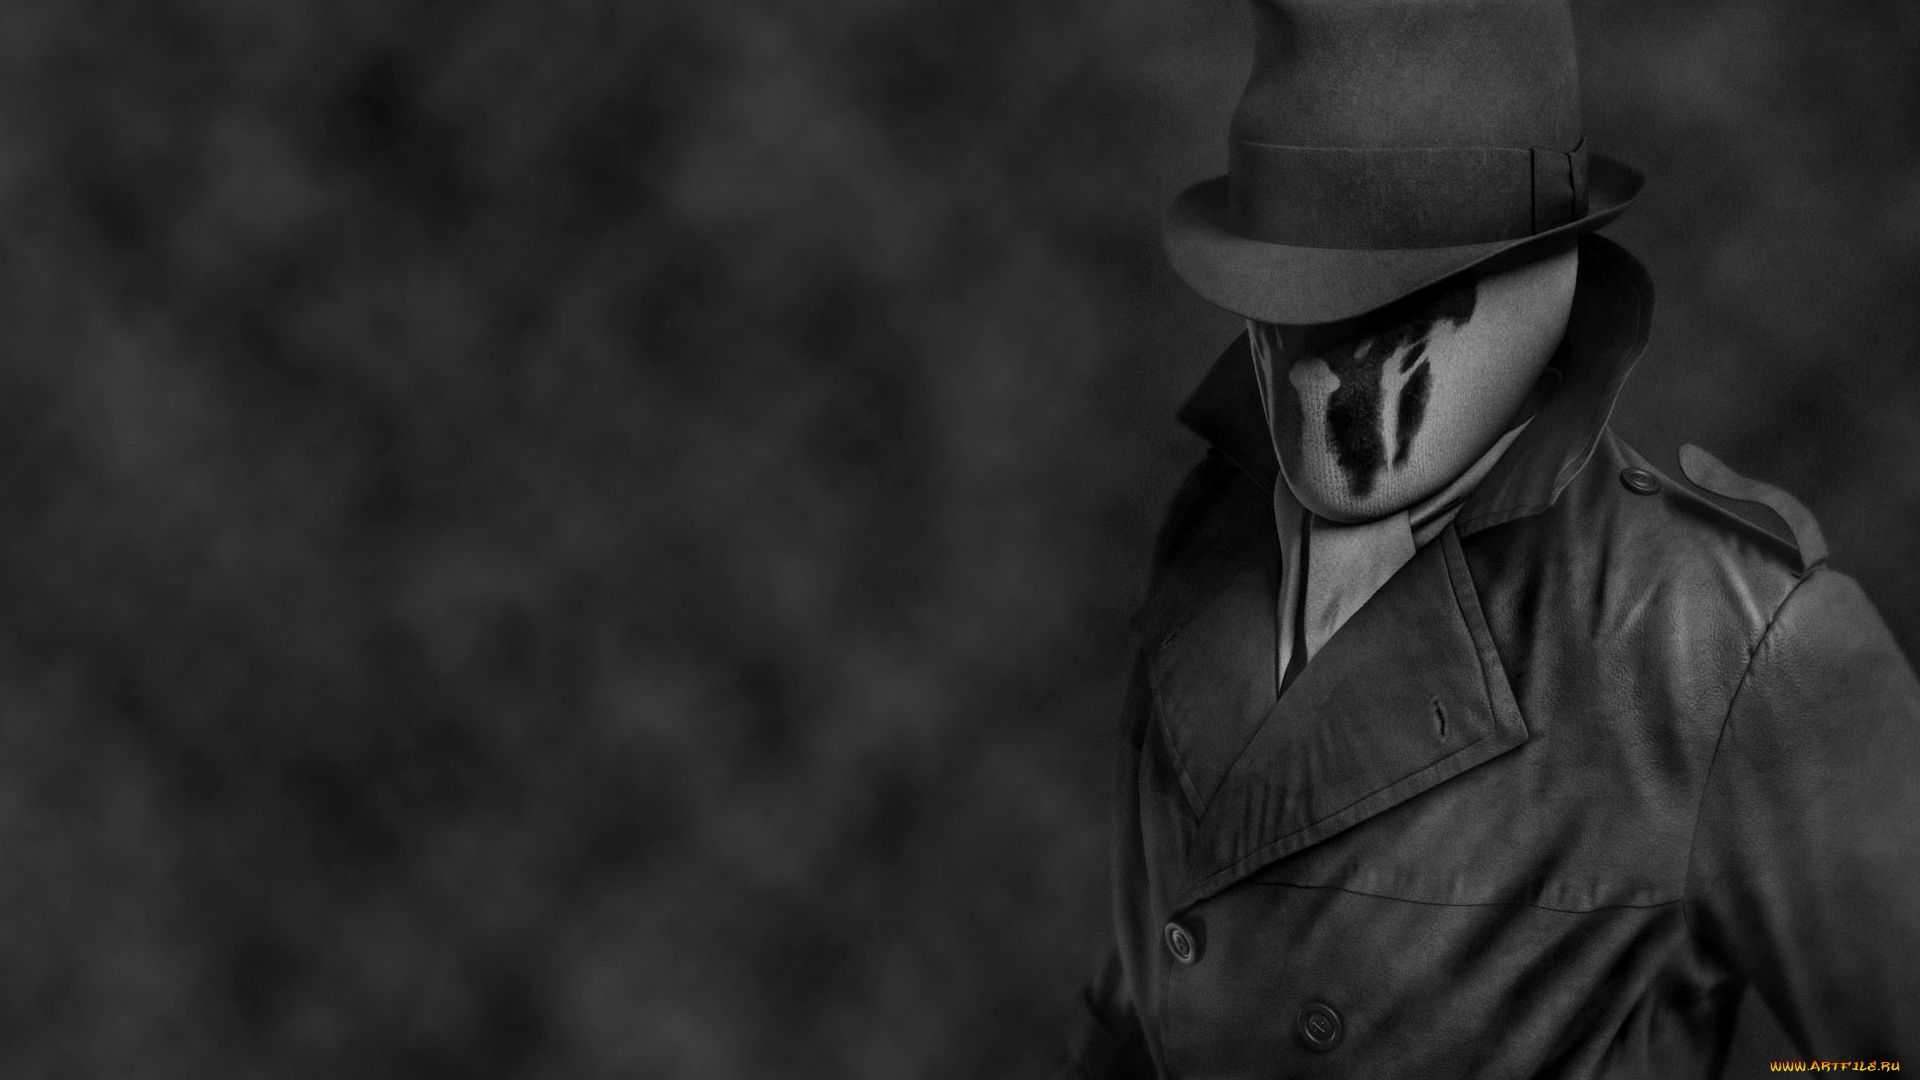 Rorschach full hd wallpaper